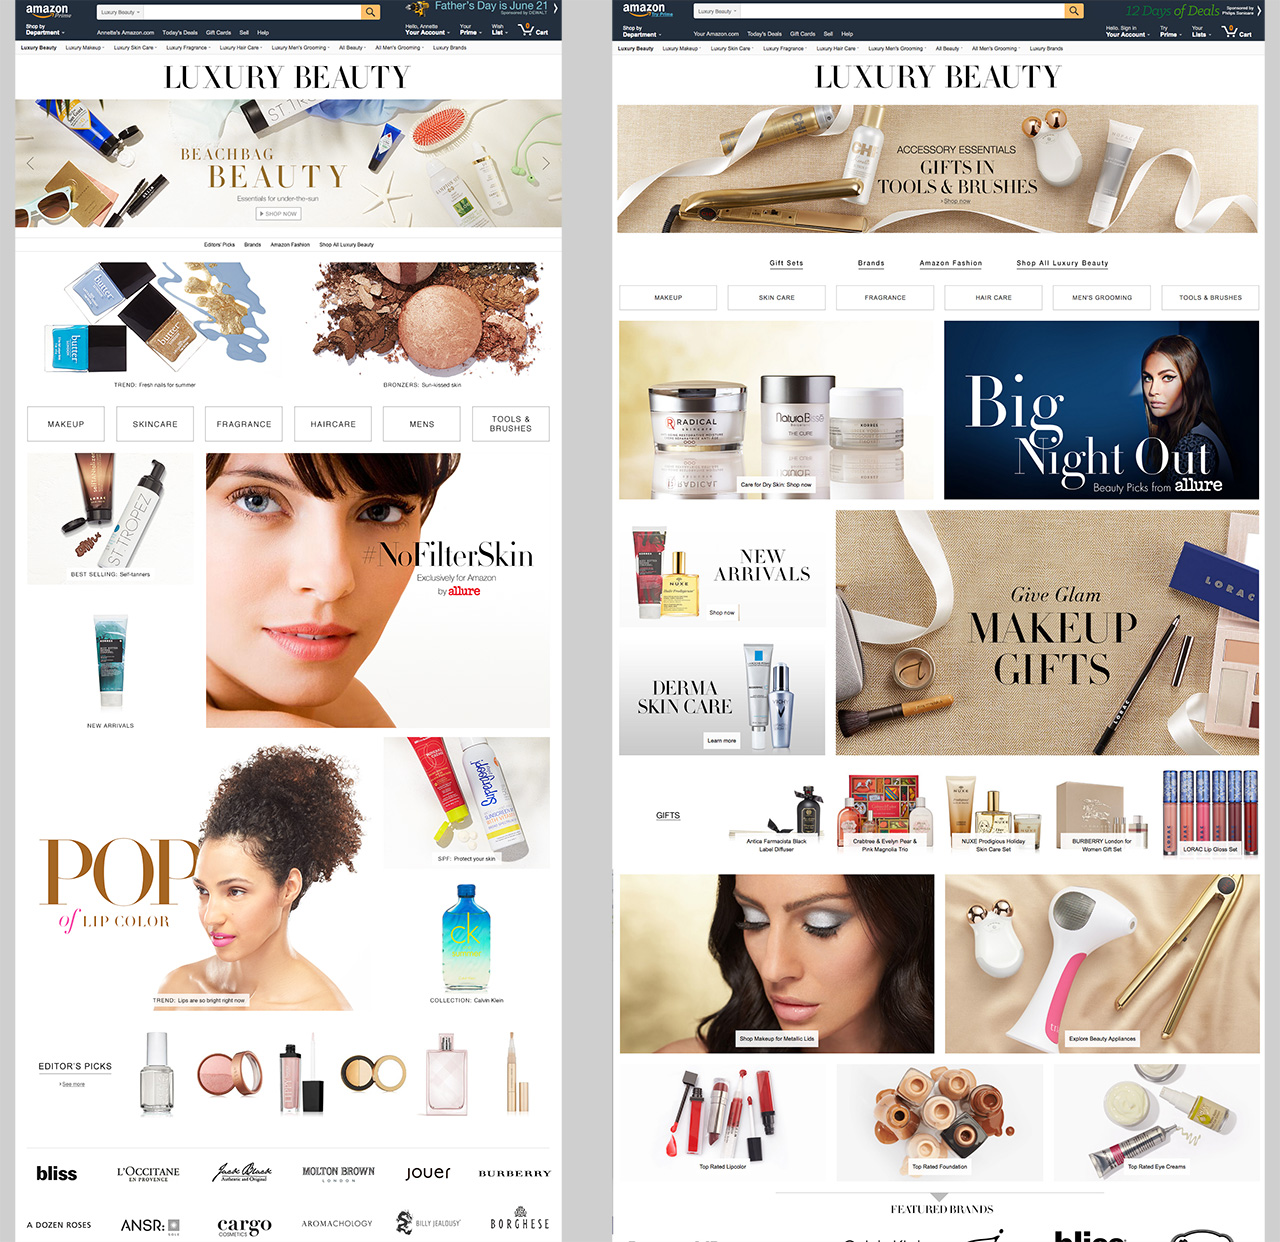 RETAIL_Luxury_Beauty_Pages